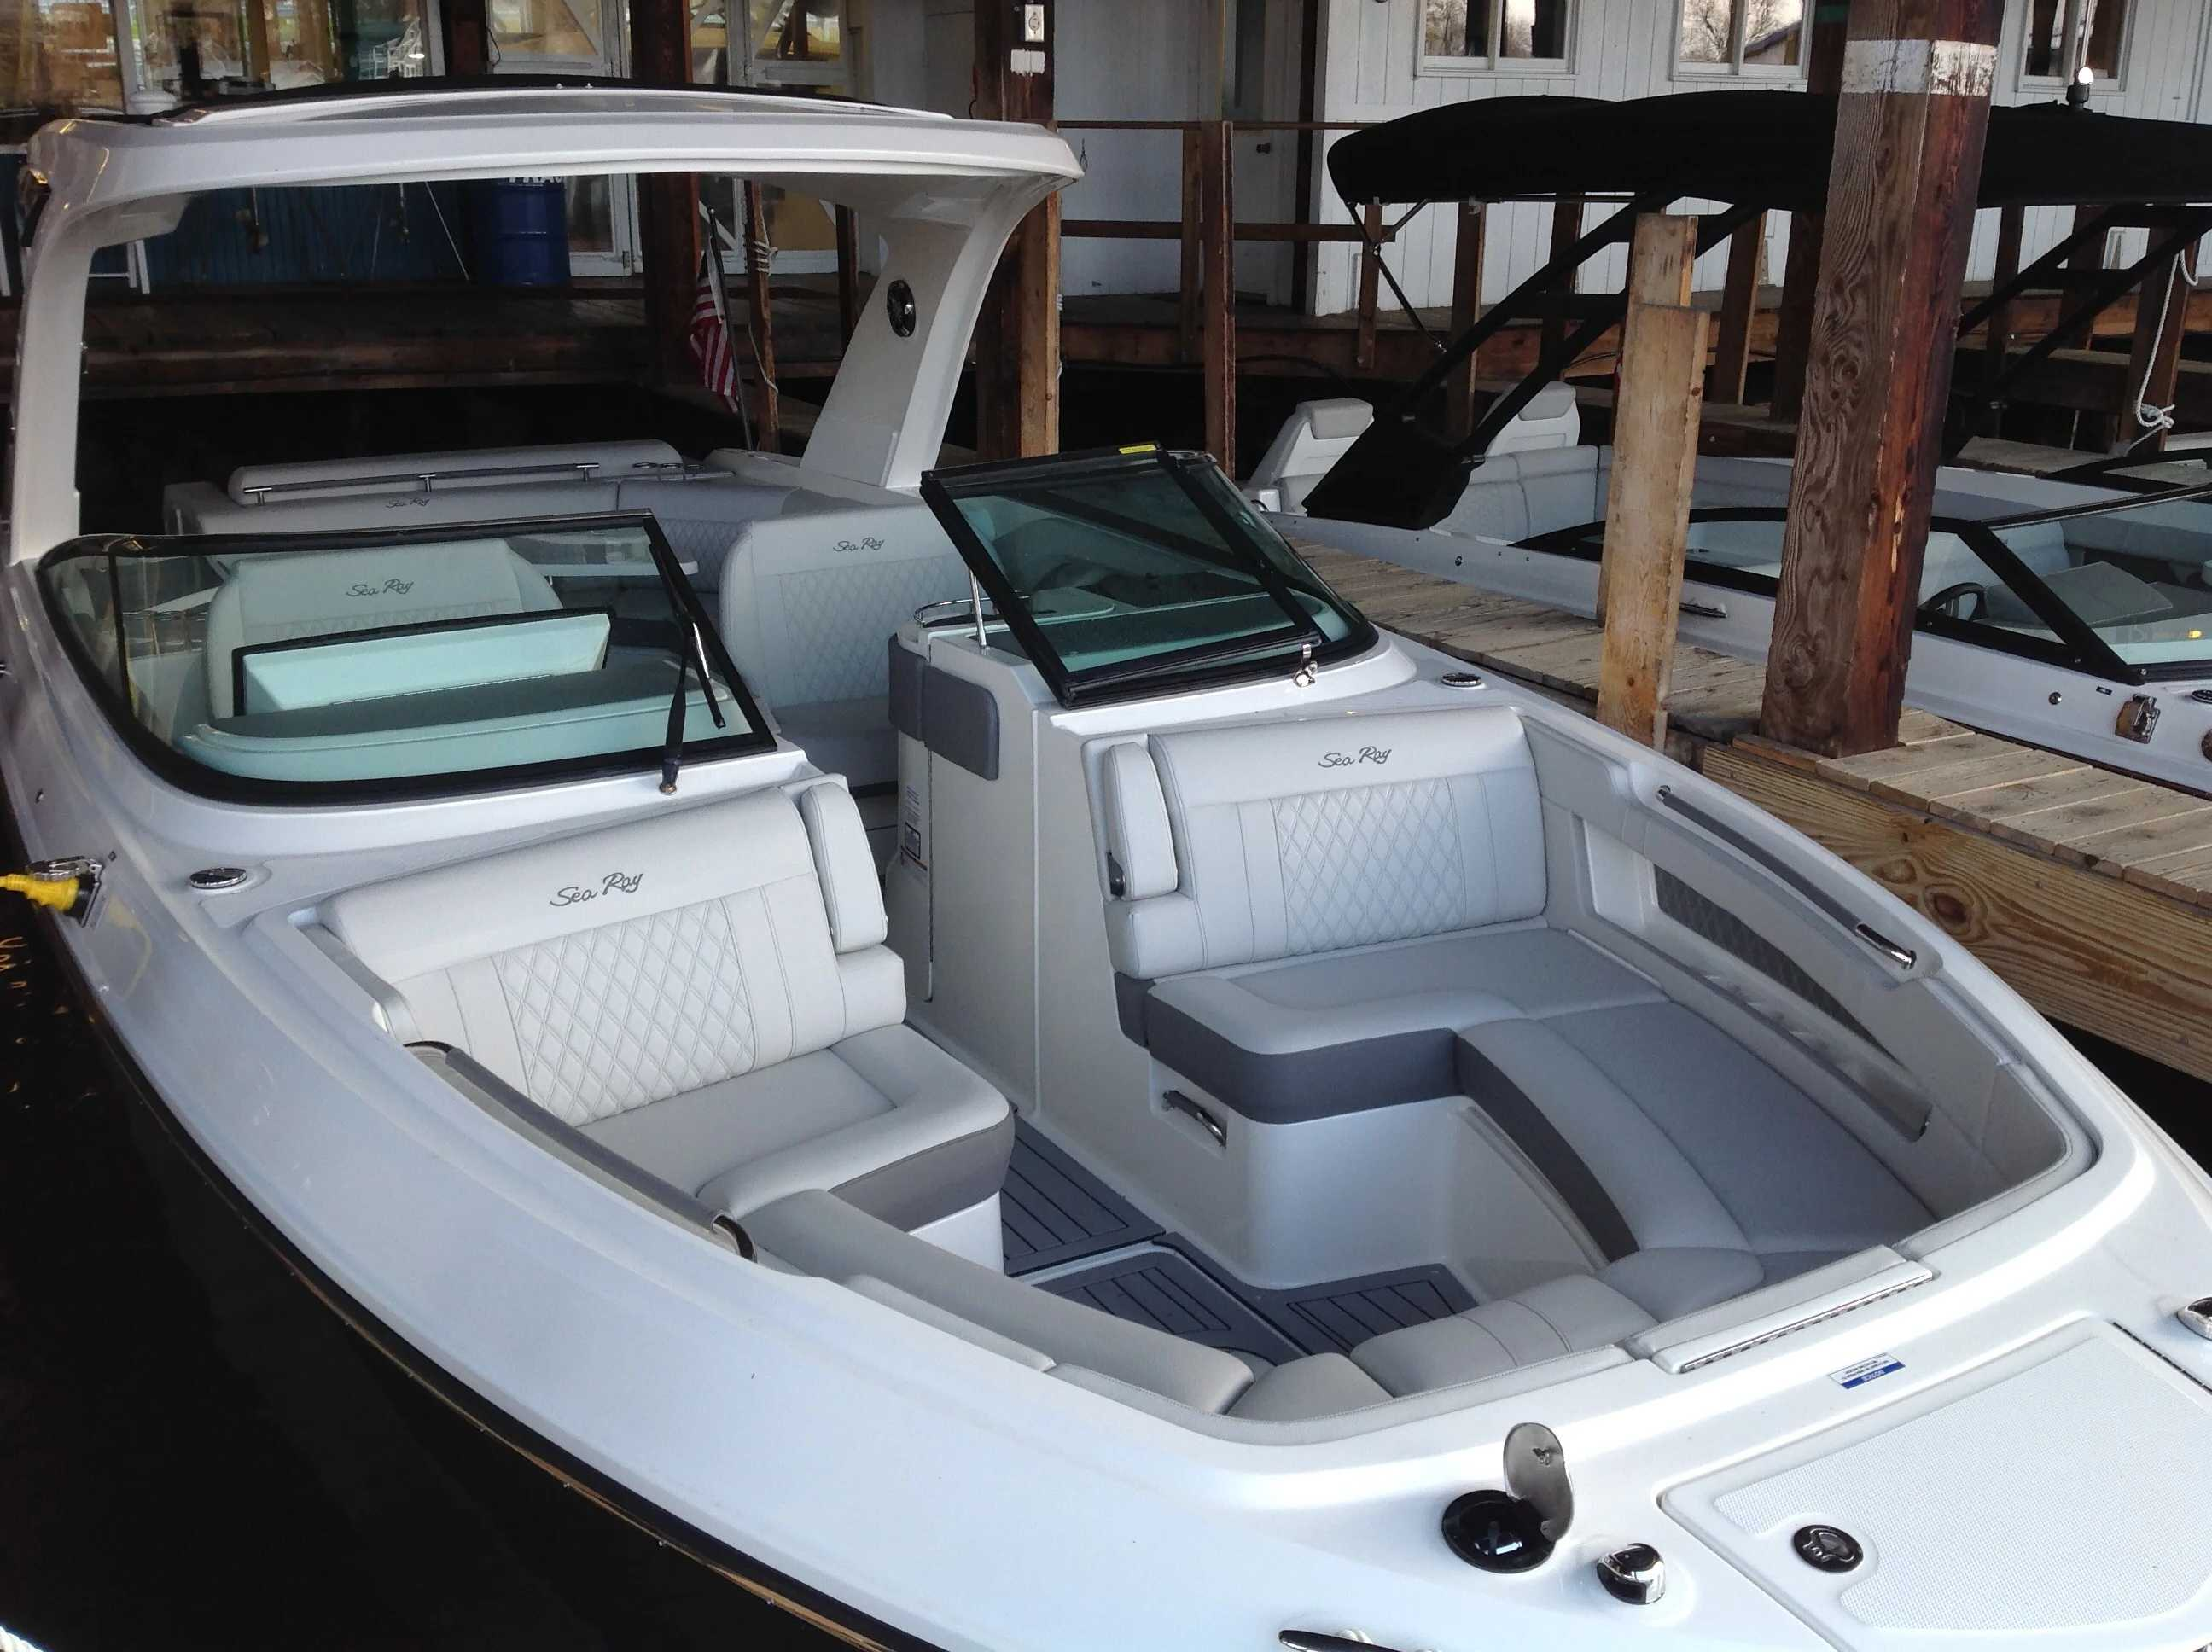 2021 Sea Ray boat for sale, model of the boat is 310 SLX & Image # 3 of 20